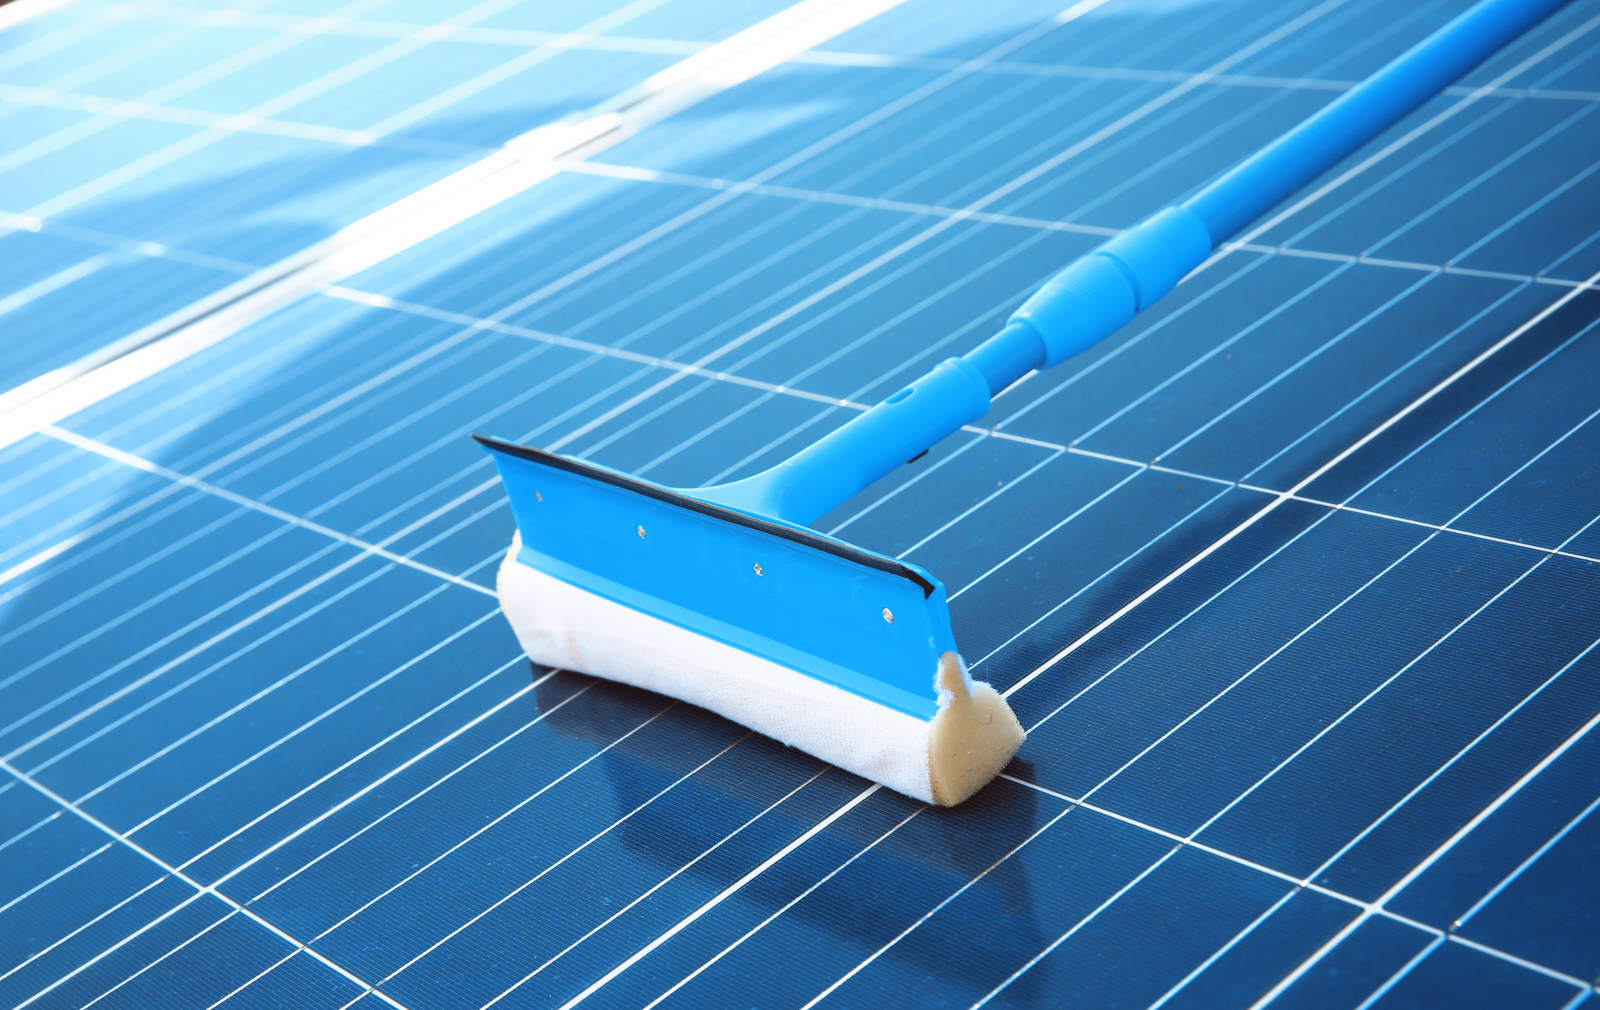 Best ways to clean solar panels on your home